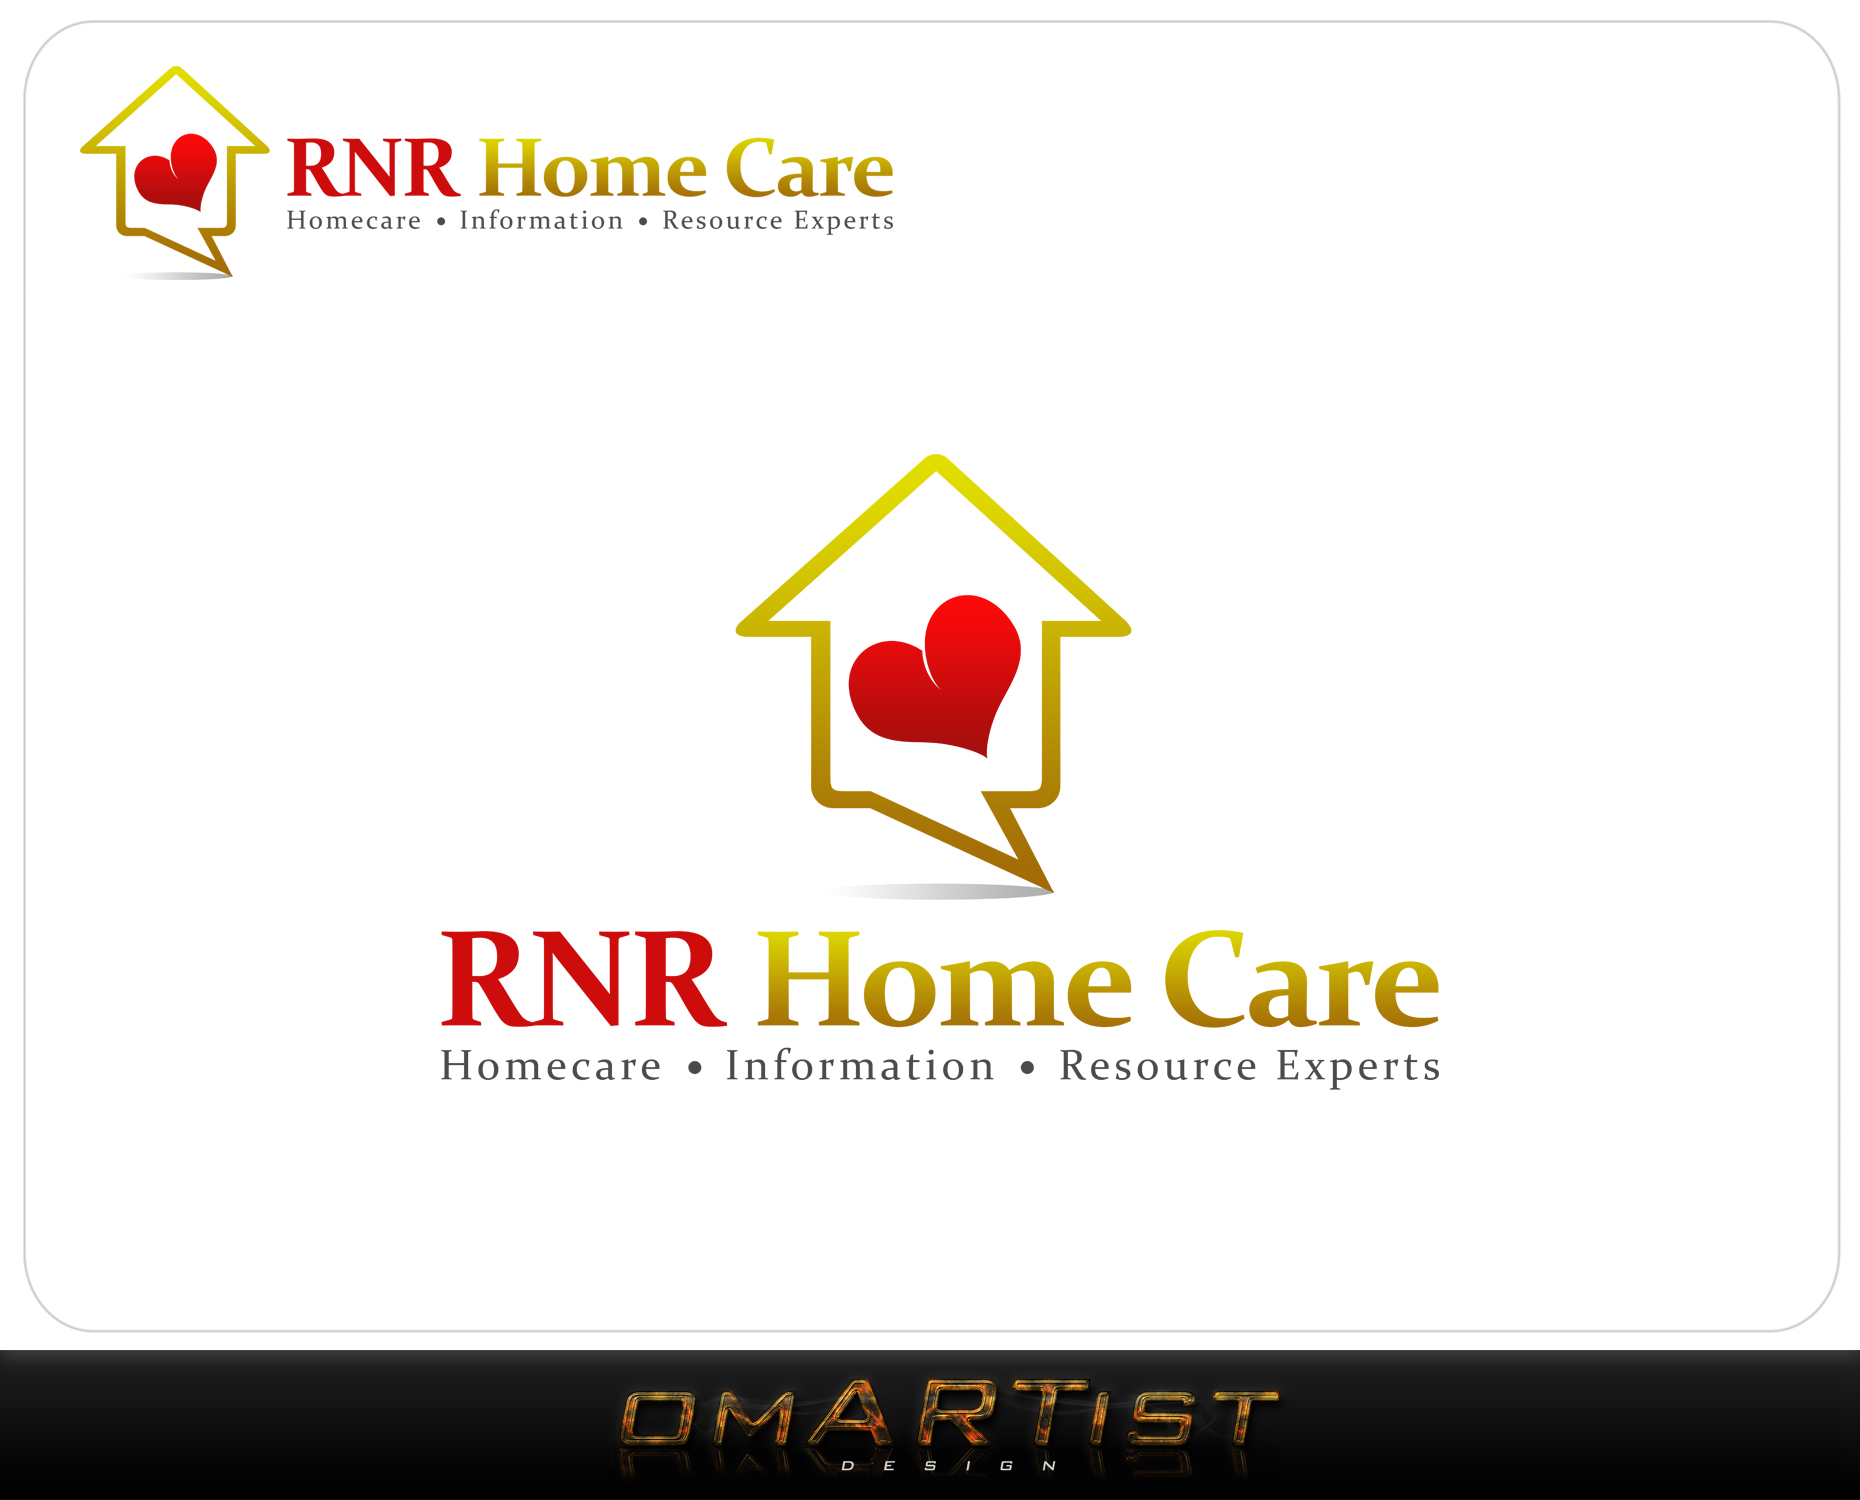 Logo Design by omARTist - Entry No. 166 in the Logo Design Contest Imaginative Logo Design for RNR HomeCare.